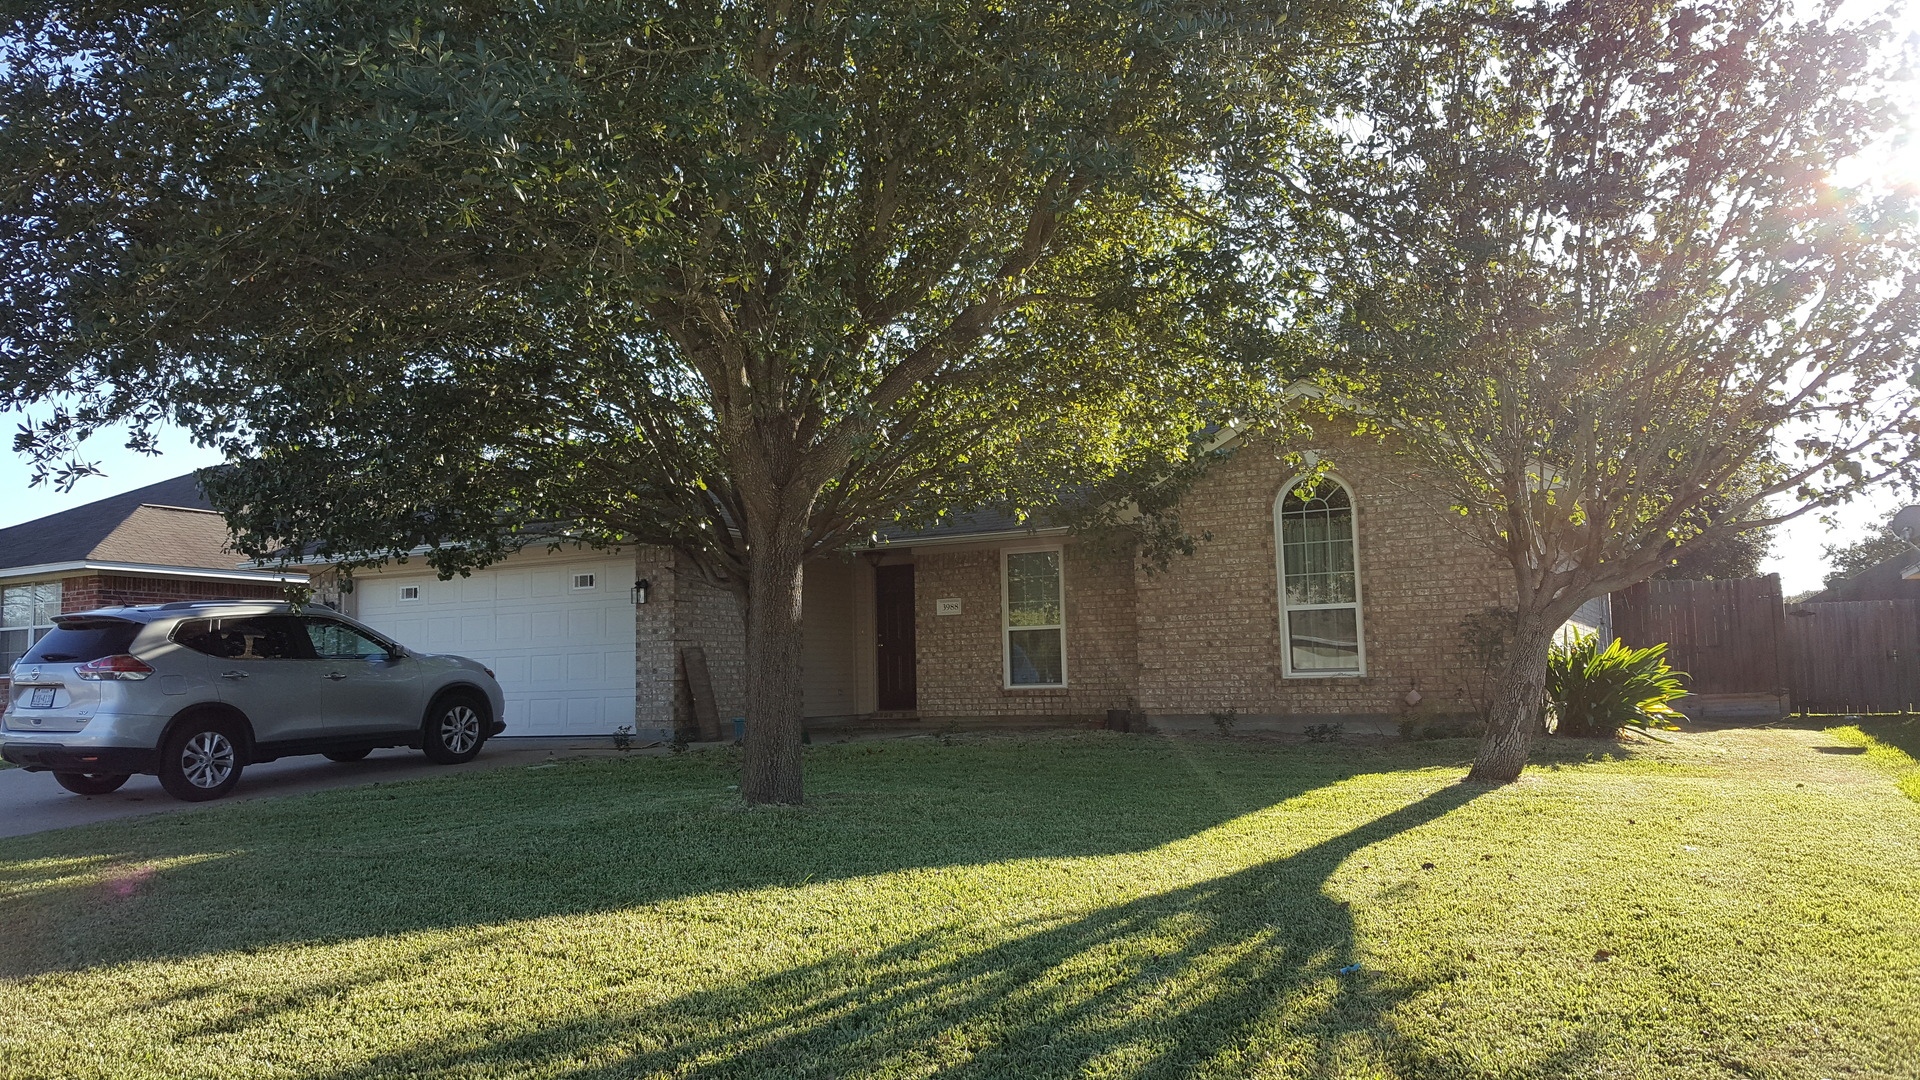 Apartments And Houses For Rent Near Me In College Station